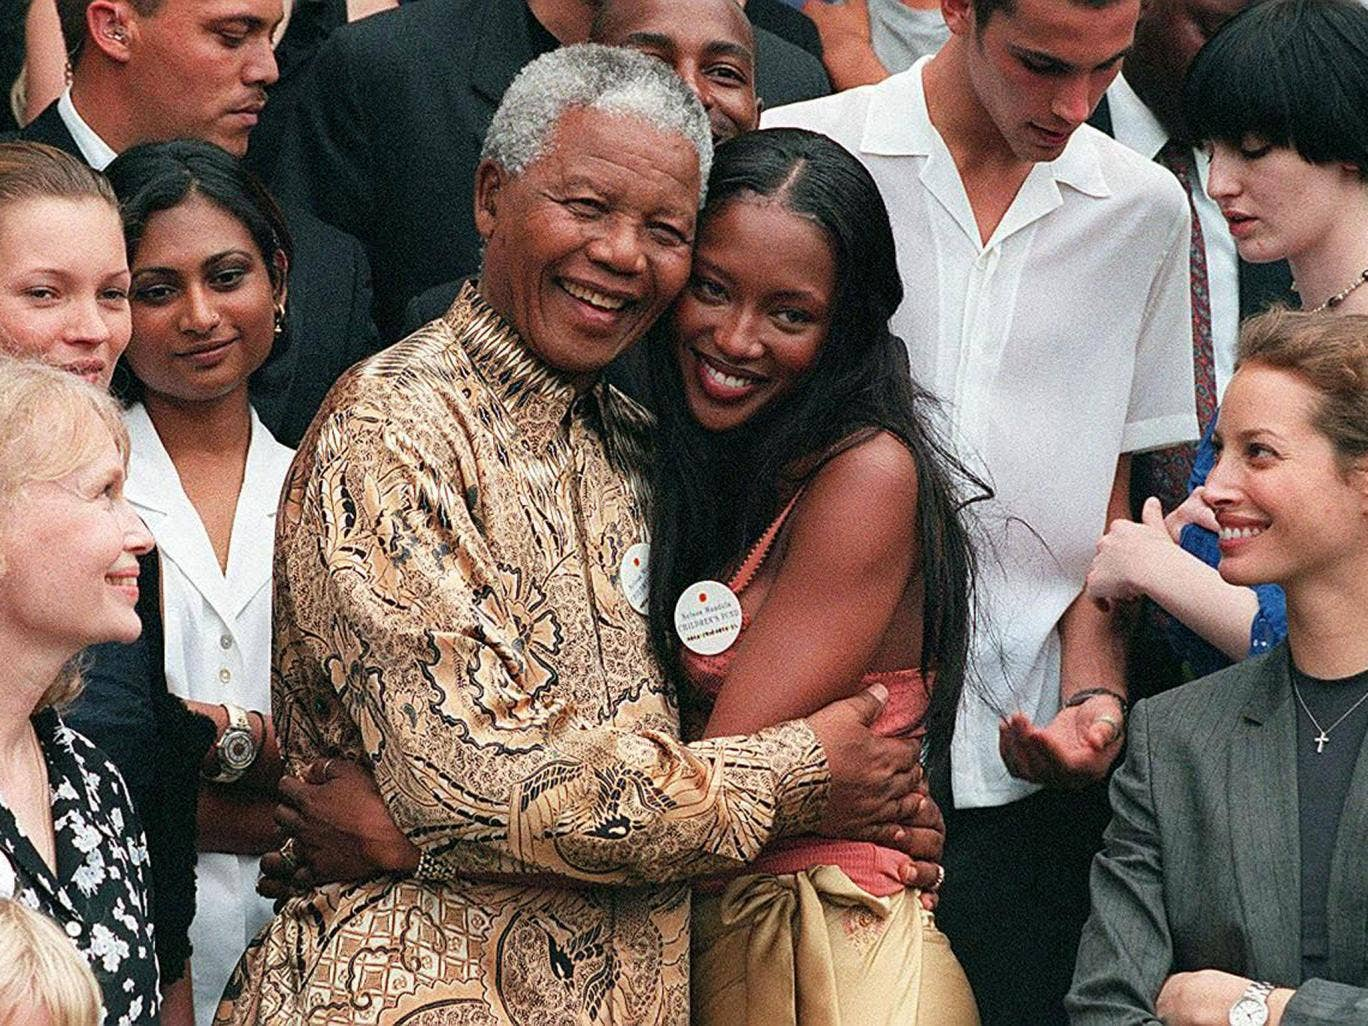 February 1998: Nelson Mandela (L) hugs British supermodel Naomi Campbell in front of American actress Mia Farrow, British model Kate Moss (second from left) and model Christy Turlington